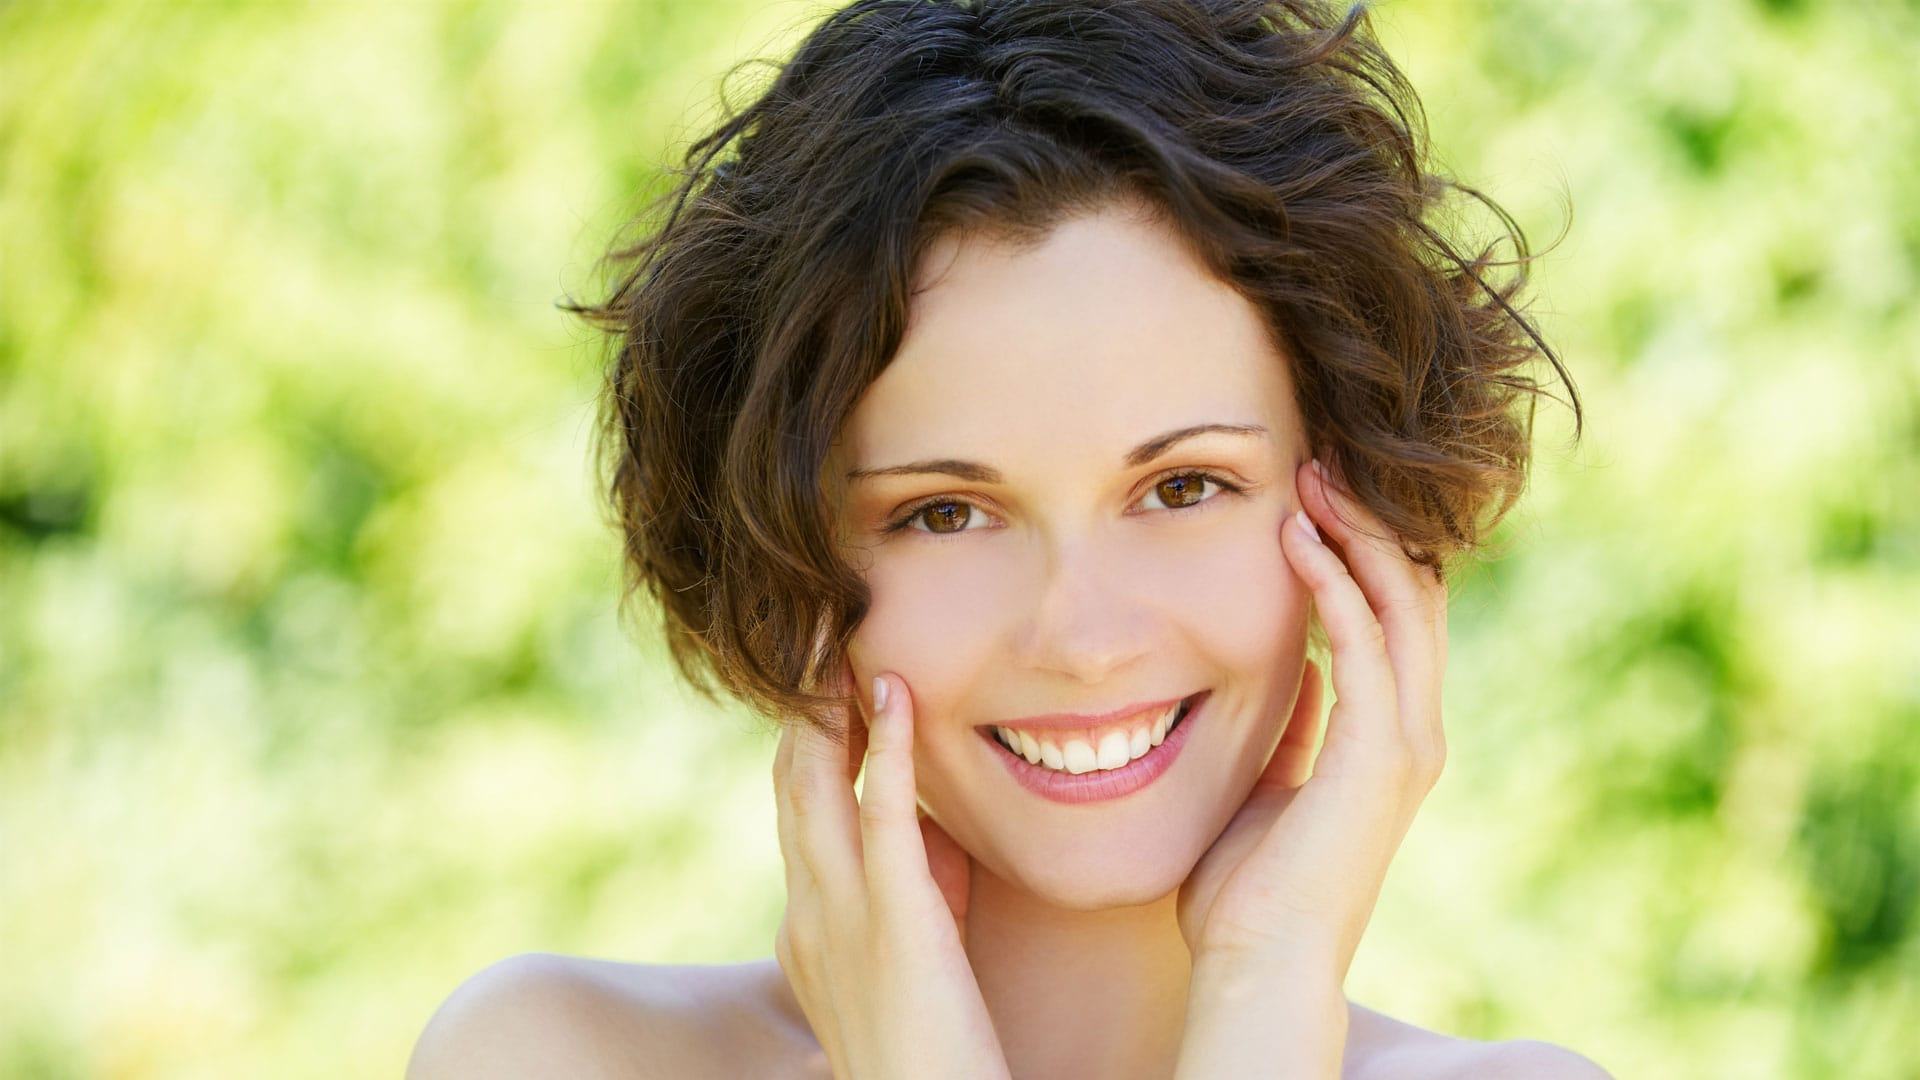 Spring Specials for a Fresh, Youthful, Nourished and Glowing Complexion